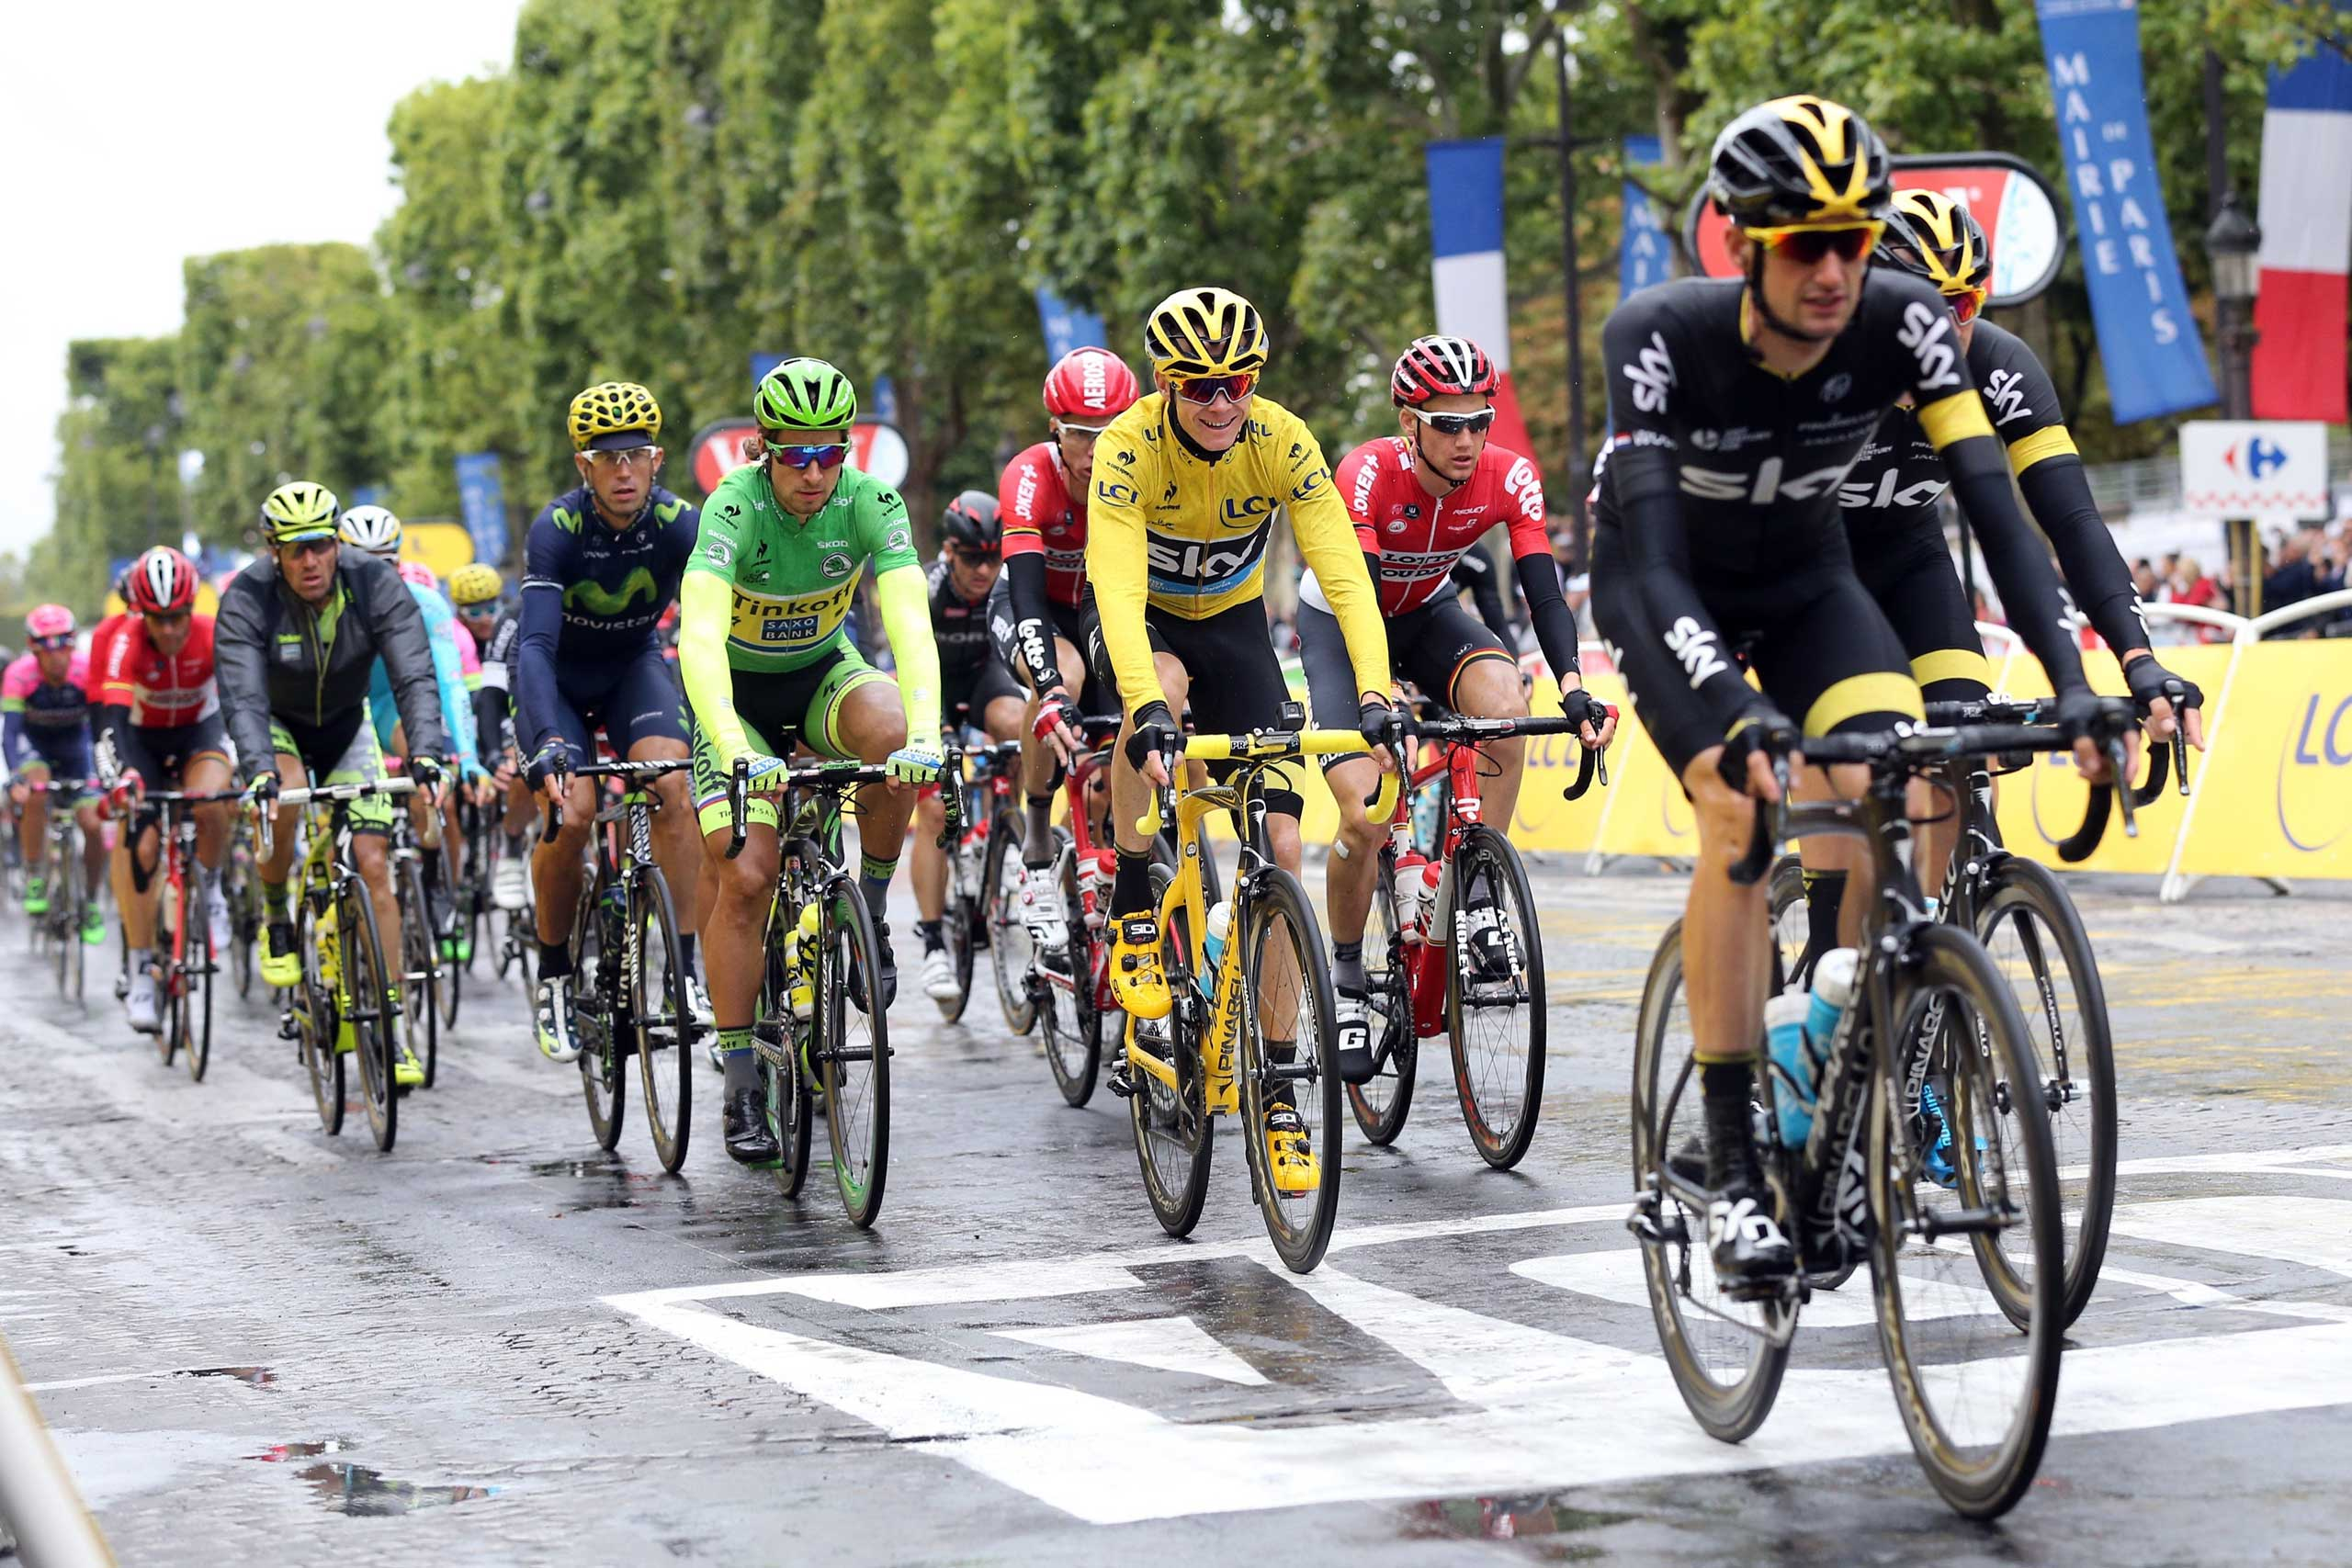 Chris Froome of Great Britain and Team Sky (yellow jersey) leads Peter Sagan of Slovakia and Tinkoff-Saxo during stage twenty one of the 2015 Tour de France in Paris on July 26, 2015.